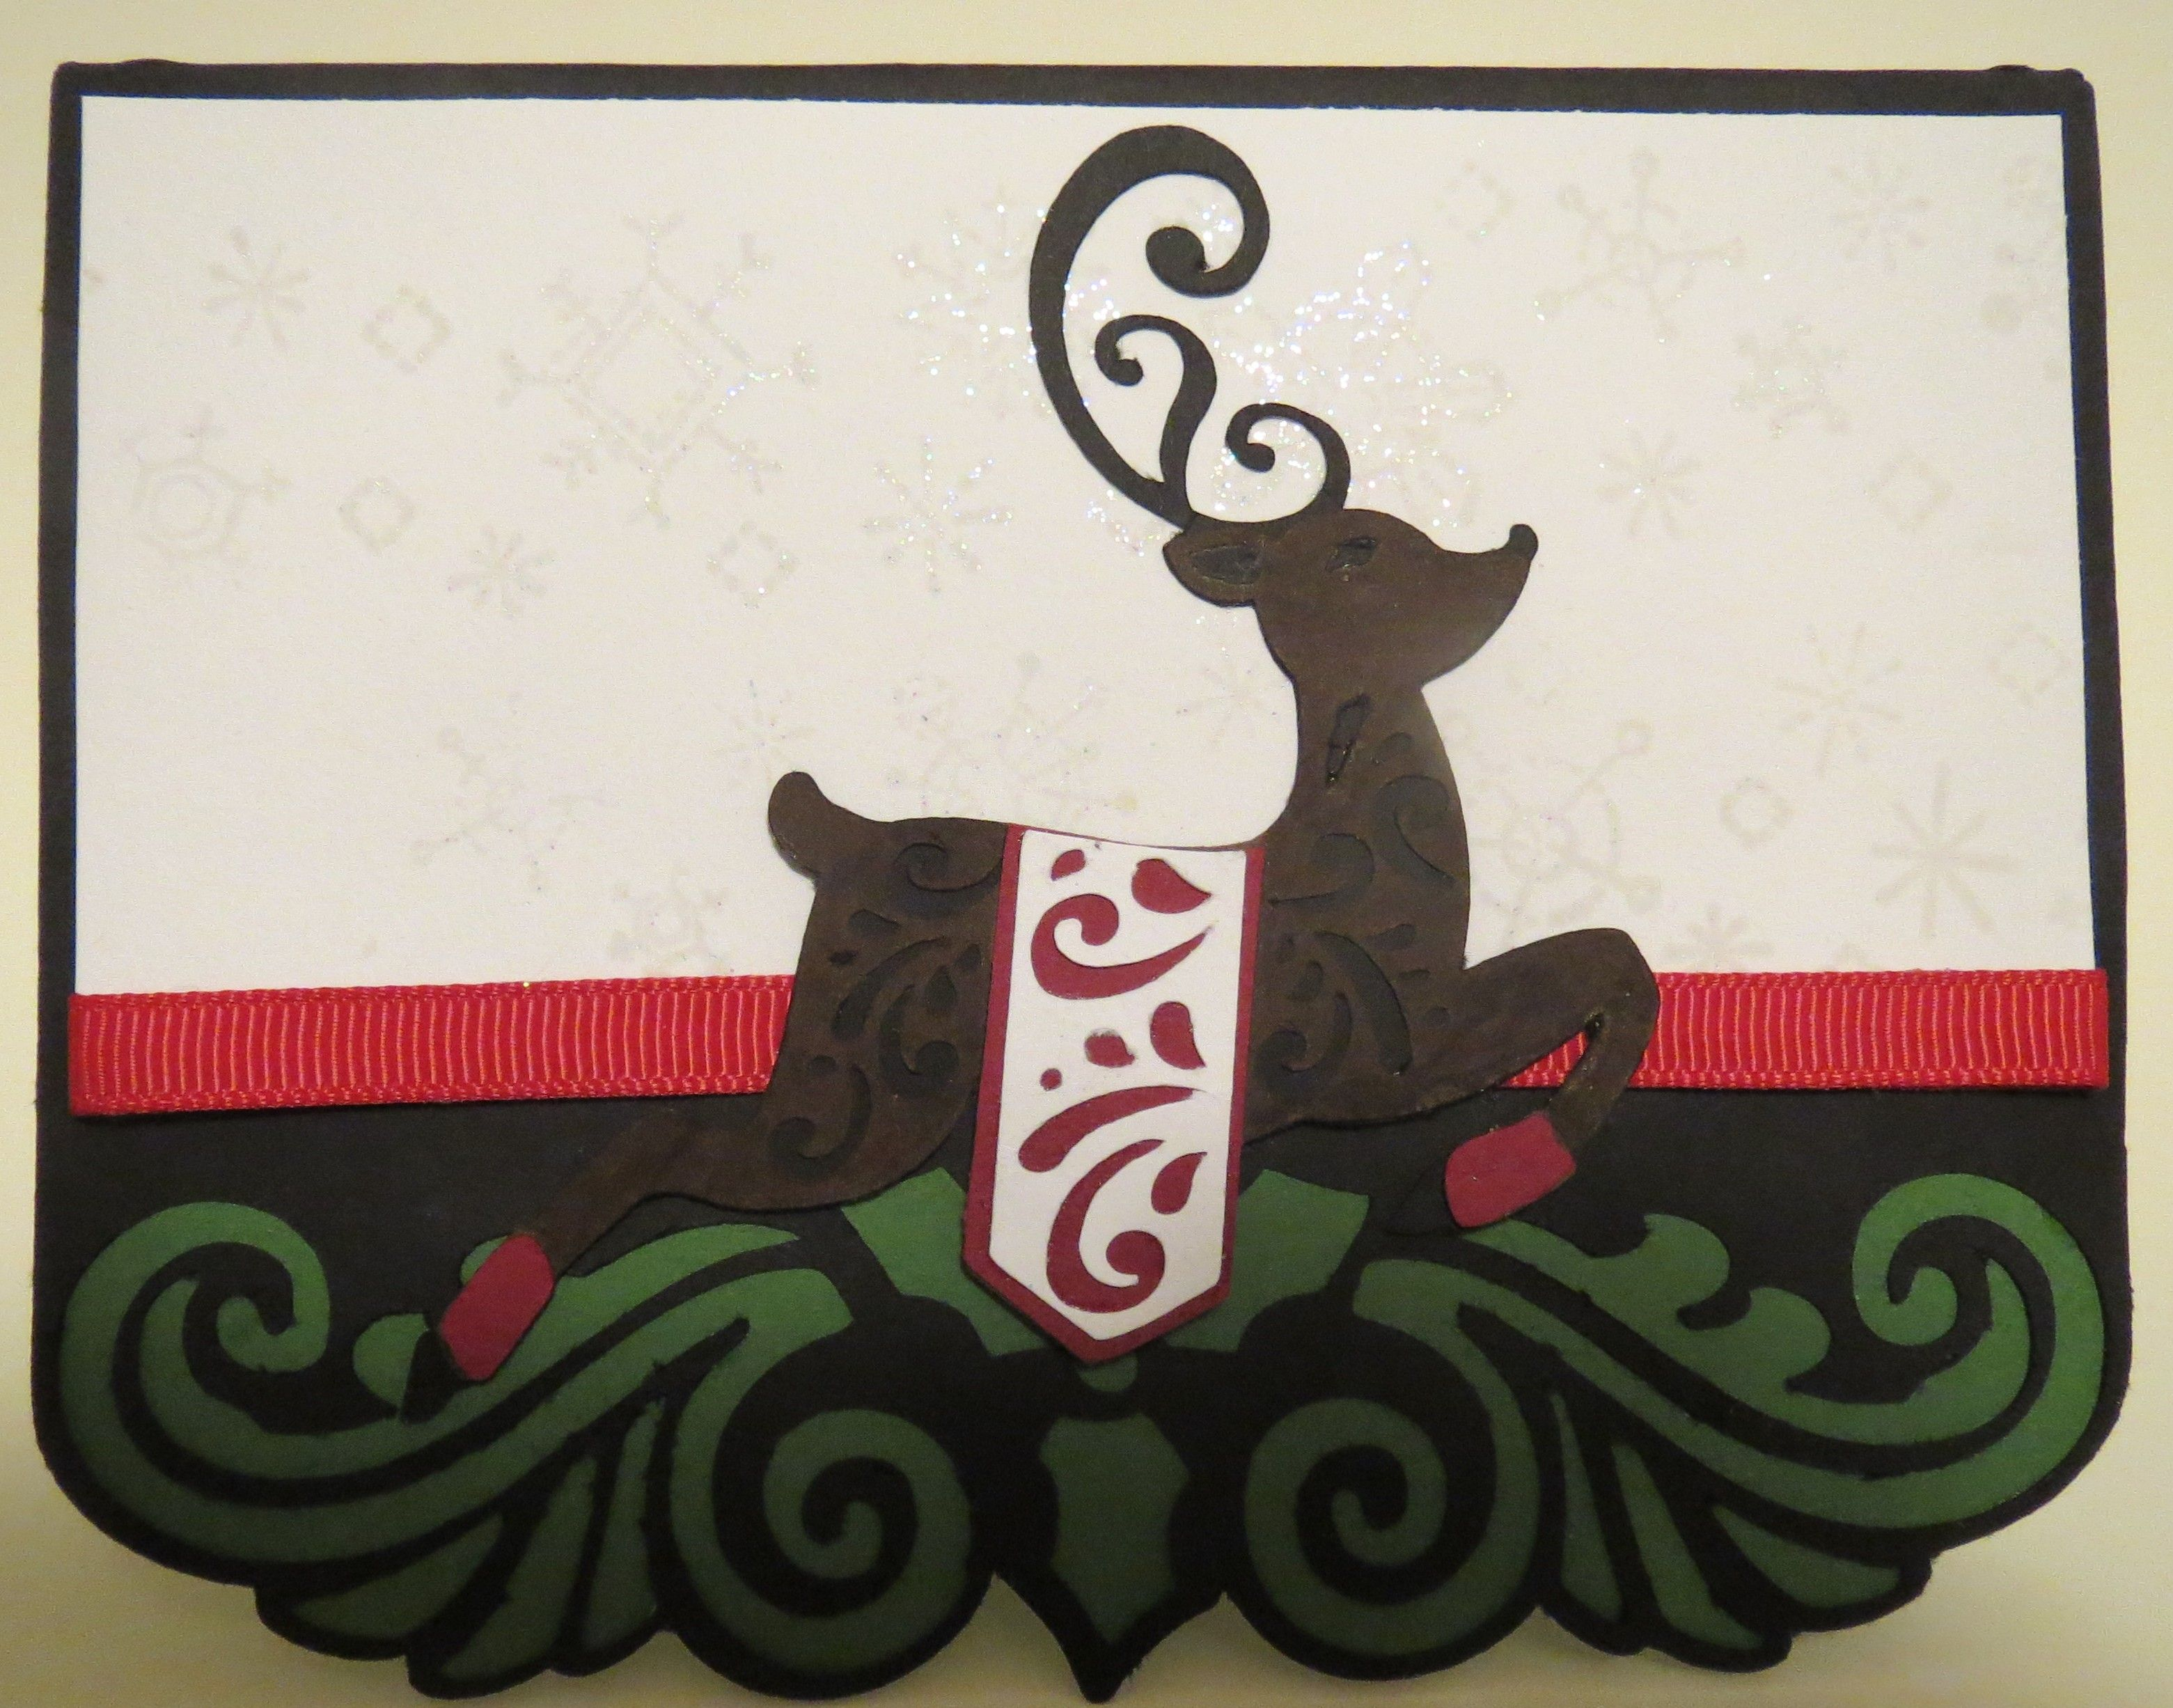 Cricut Cartridge A Quilted Christmas Christmas Cards To Make Cricut Christmas Cards Christmas Card Inspiration